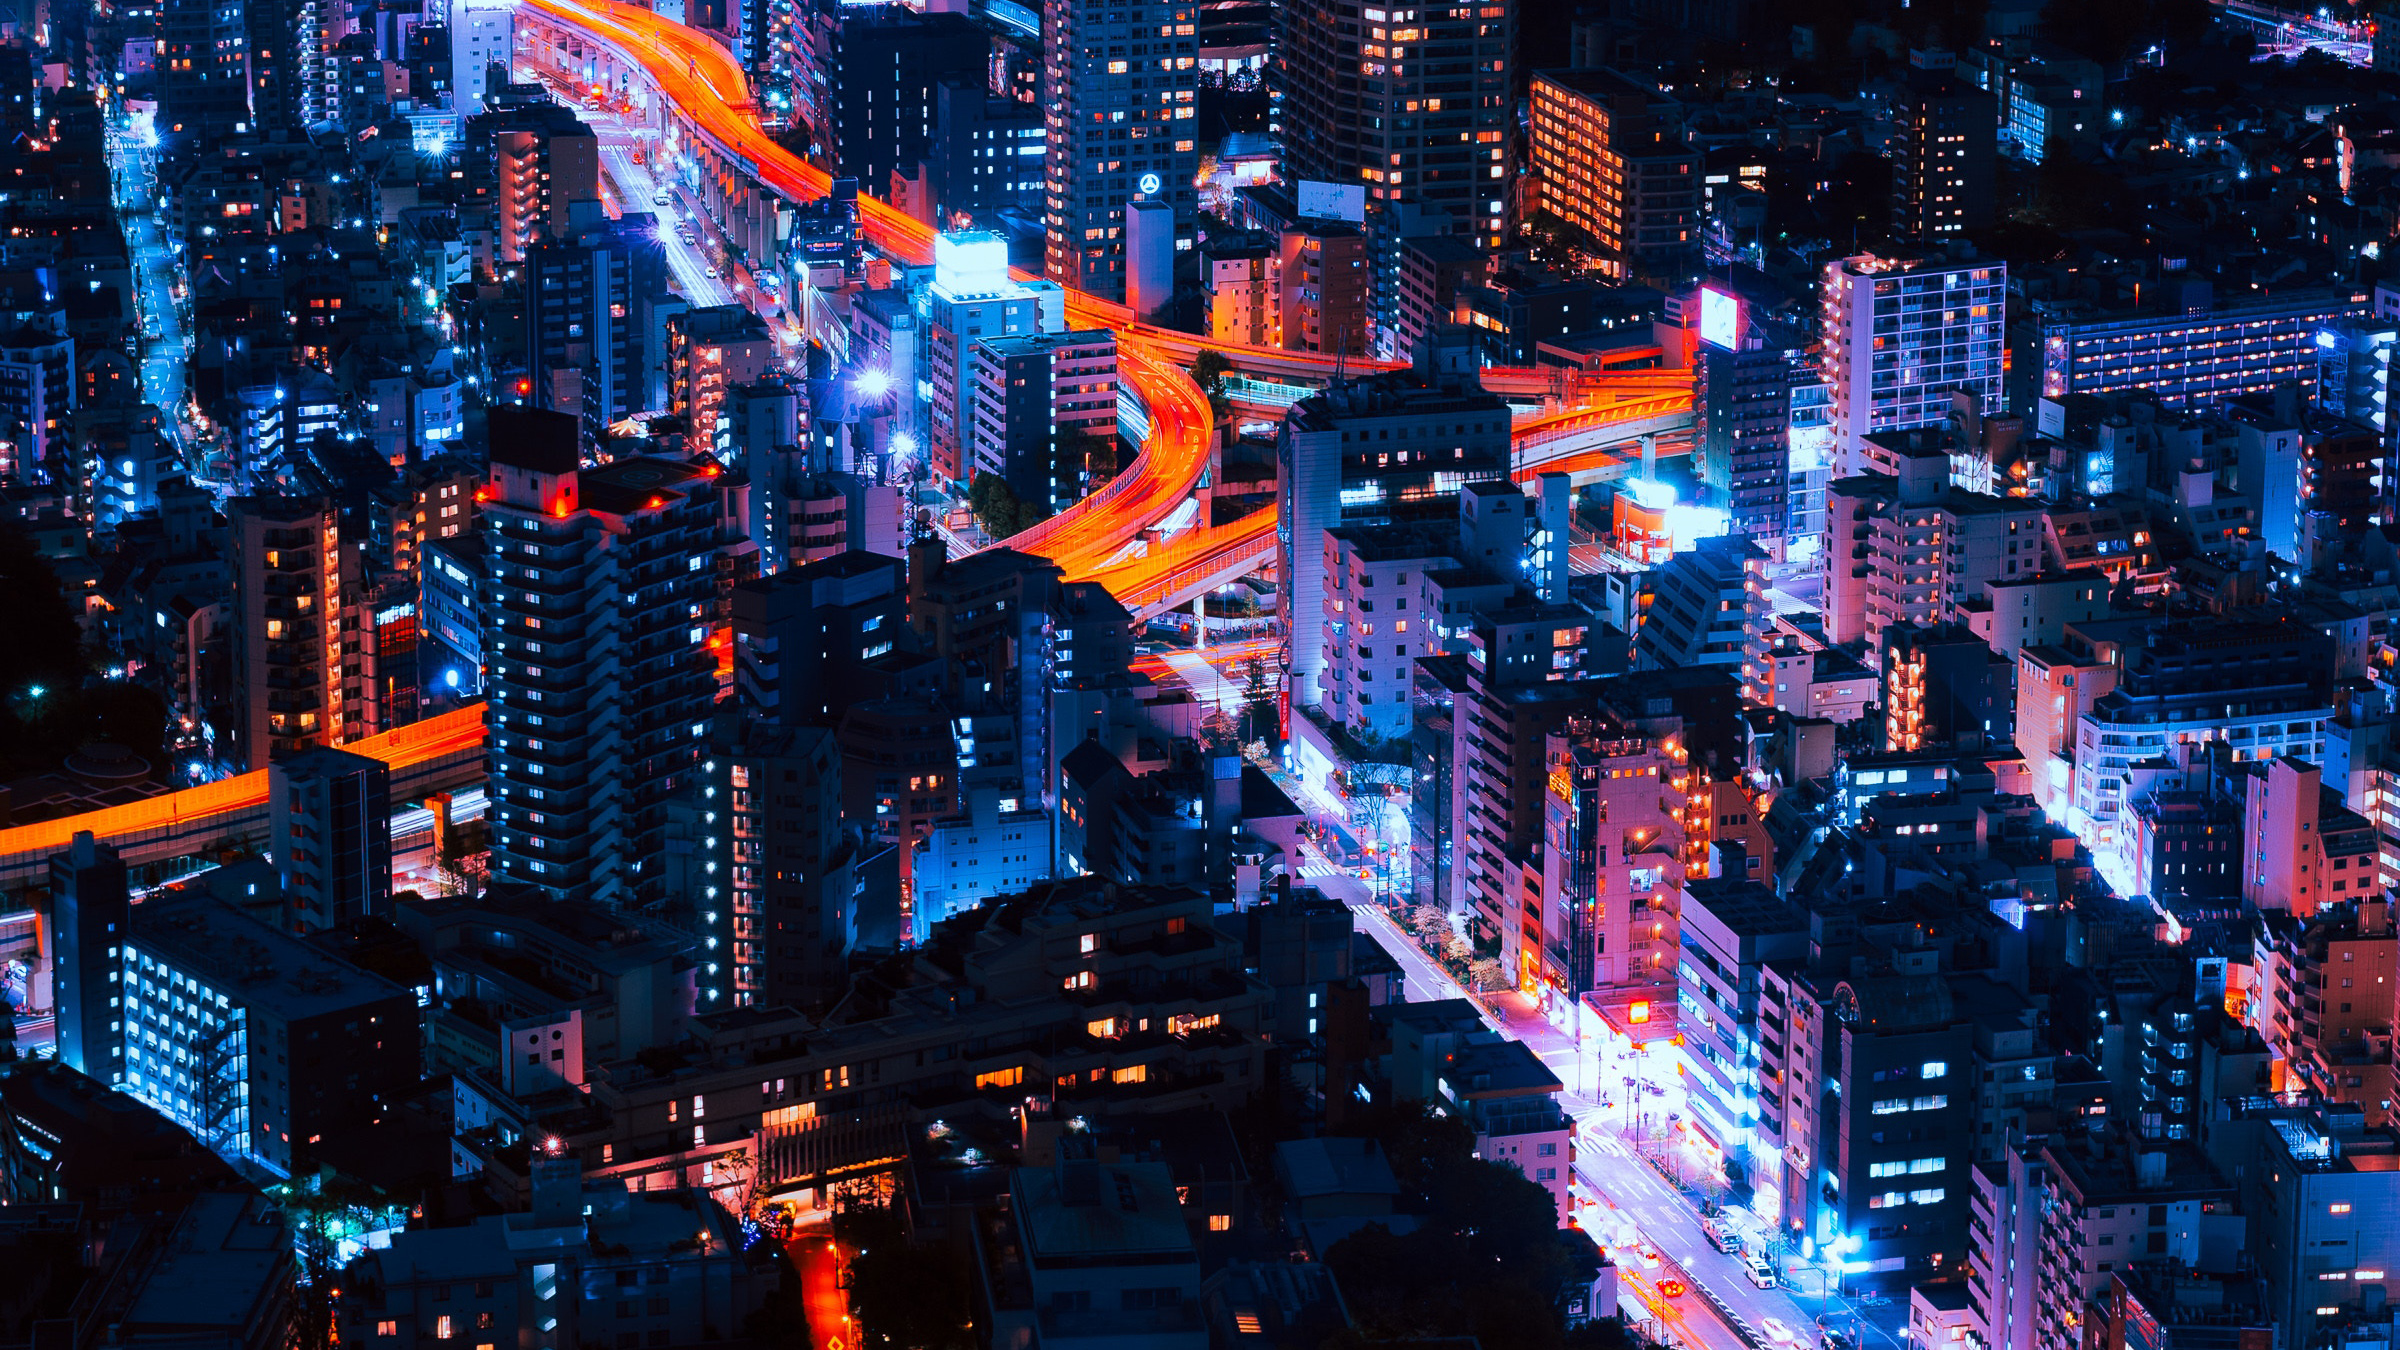 Tokyo Cityscape Neon Lights Hd World 4k Wallpapers Images